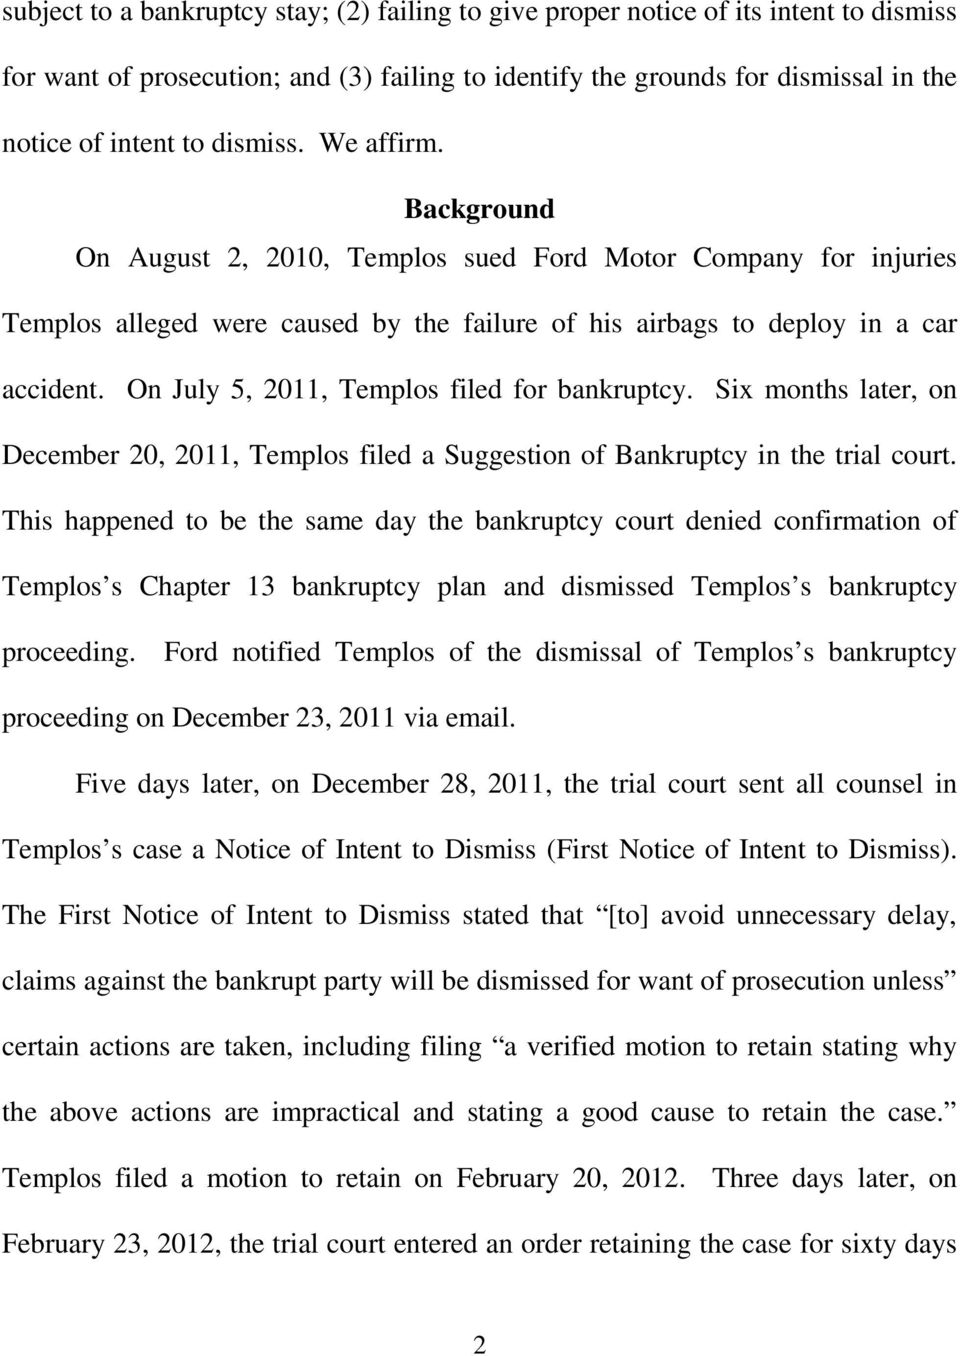 On July 5, 2011, Templos filed for bankruptcy. Six months later, on December 20, 2011, Templos filed a Suggestion of Bankruptcy in the trial court.